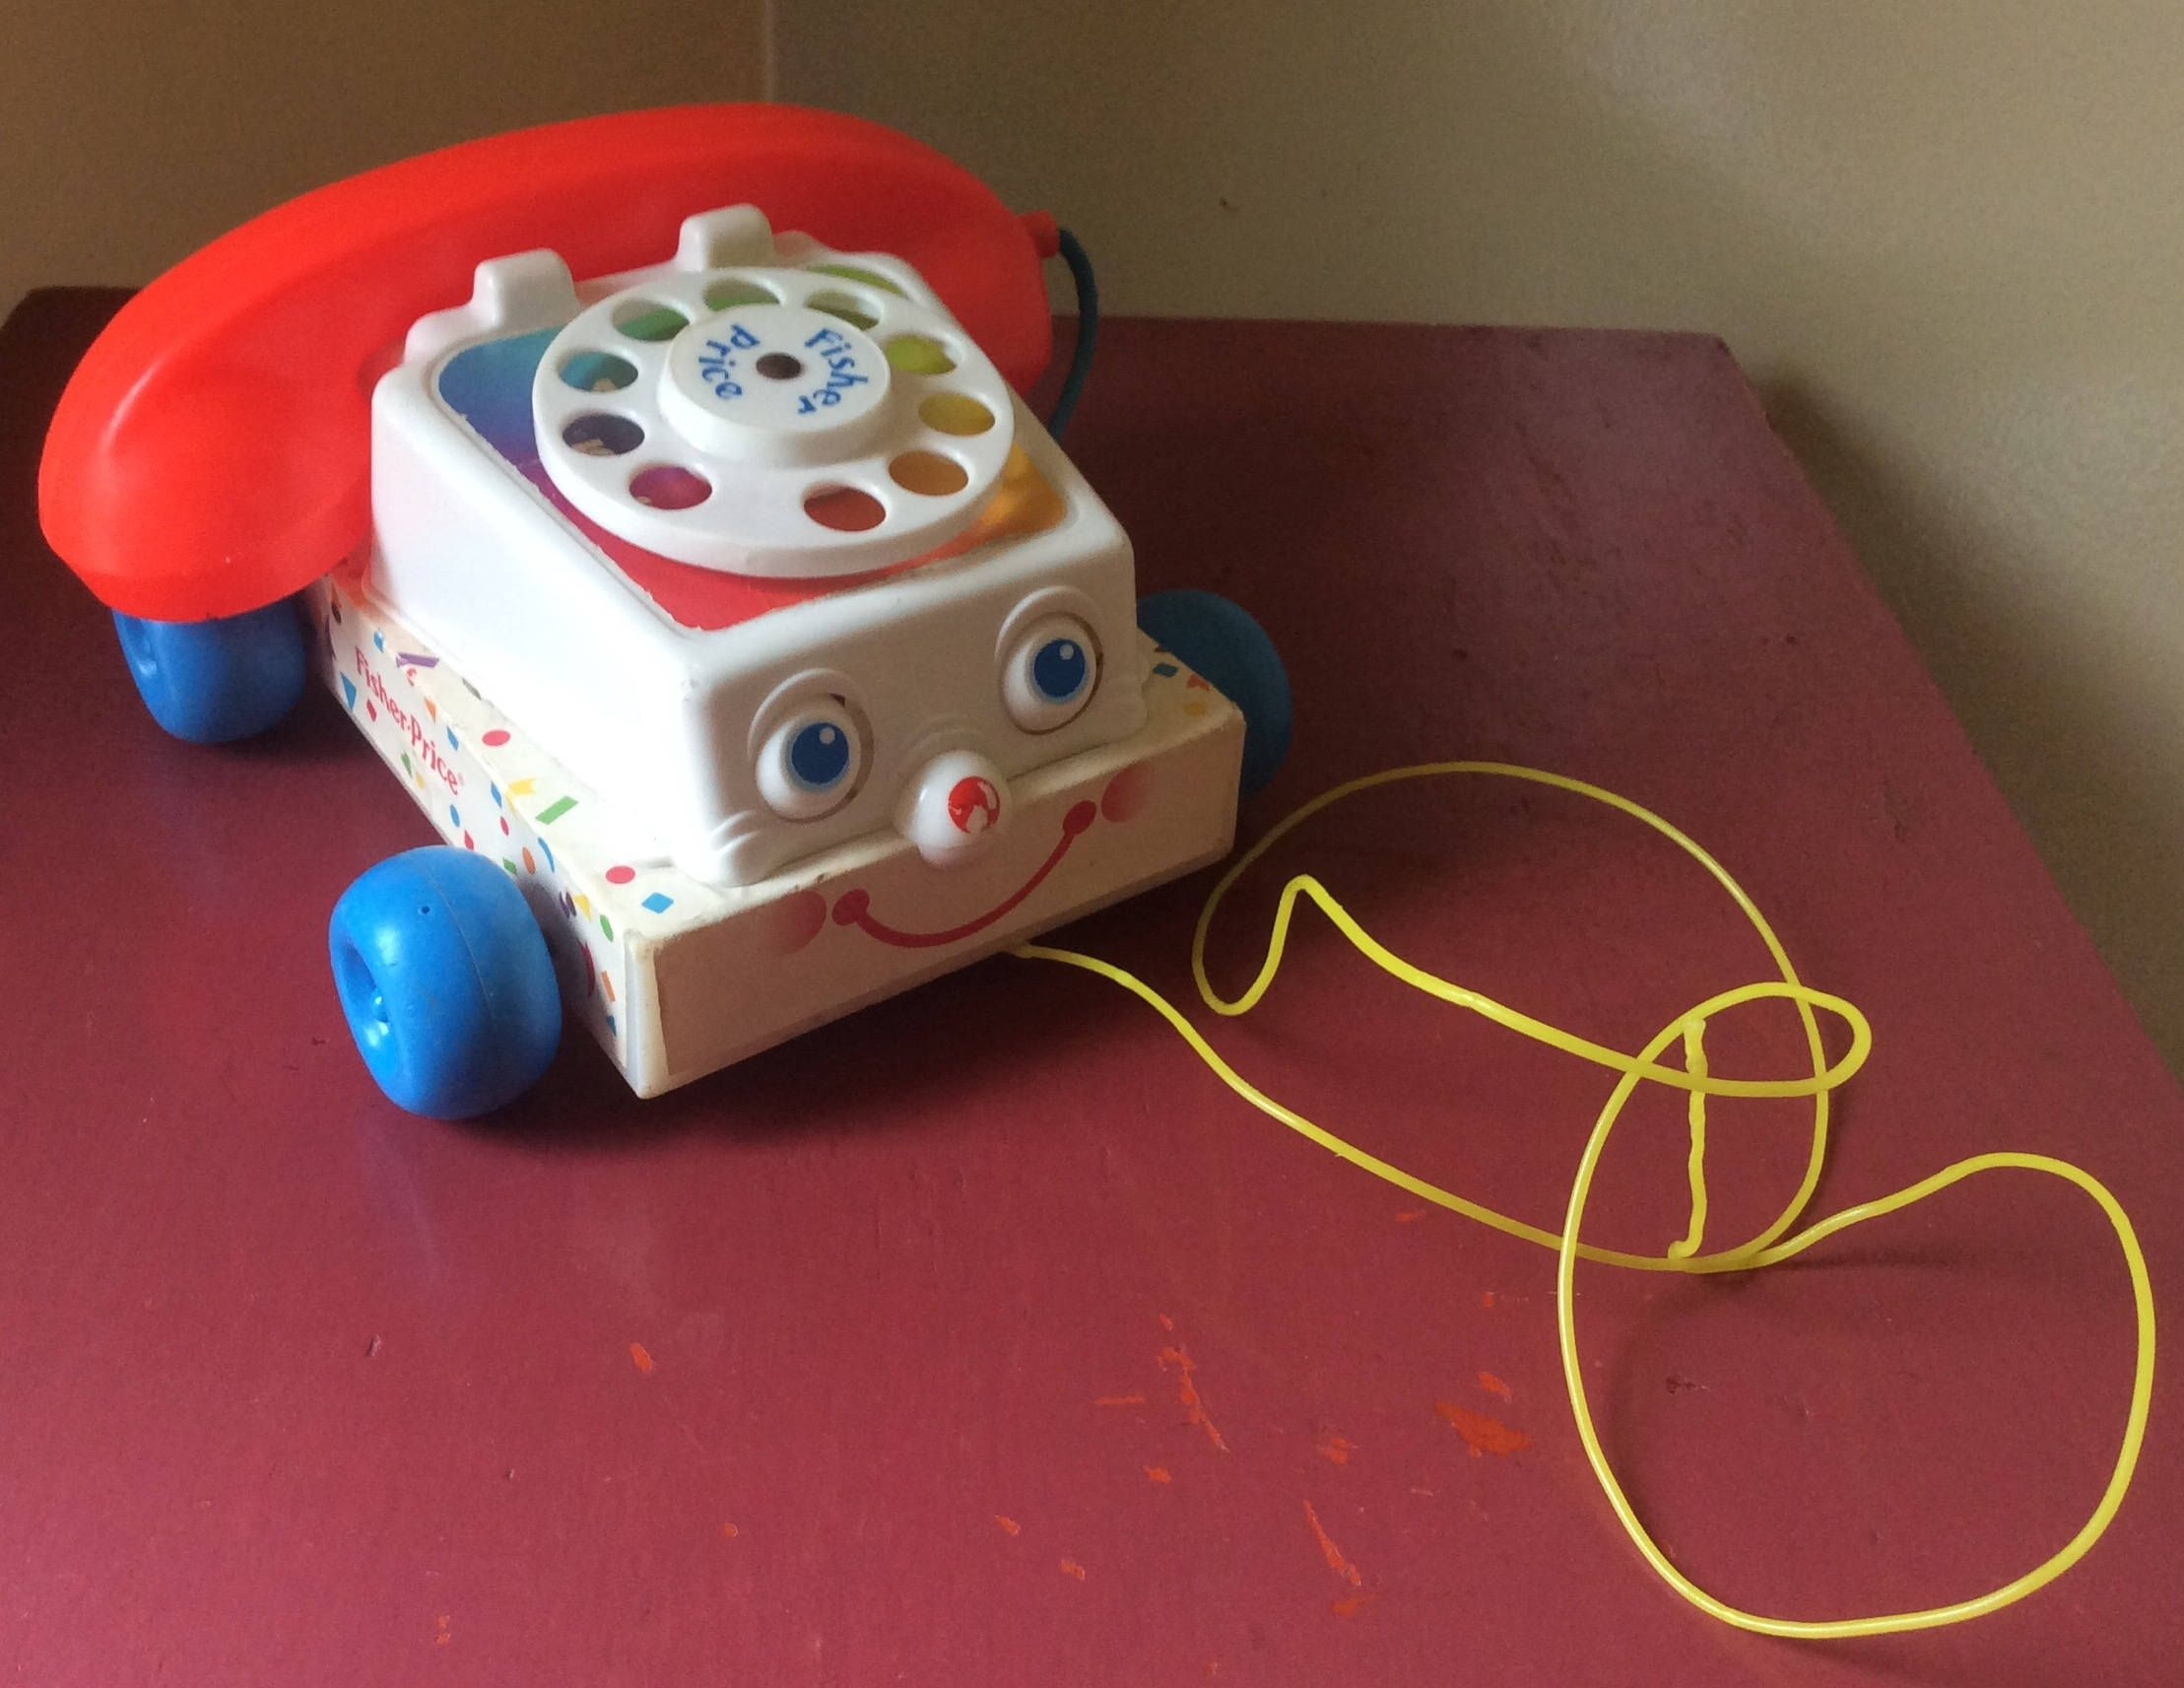 vintage authentic novelty fisher price retro rotary phone toy 1980s 1970s 1960s for children nostalgia pull toy telephone toy by mandemsclevercache on etsy [ 2217 x 1713 Pixel ]